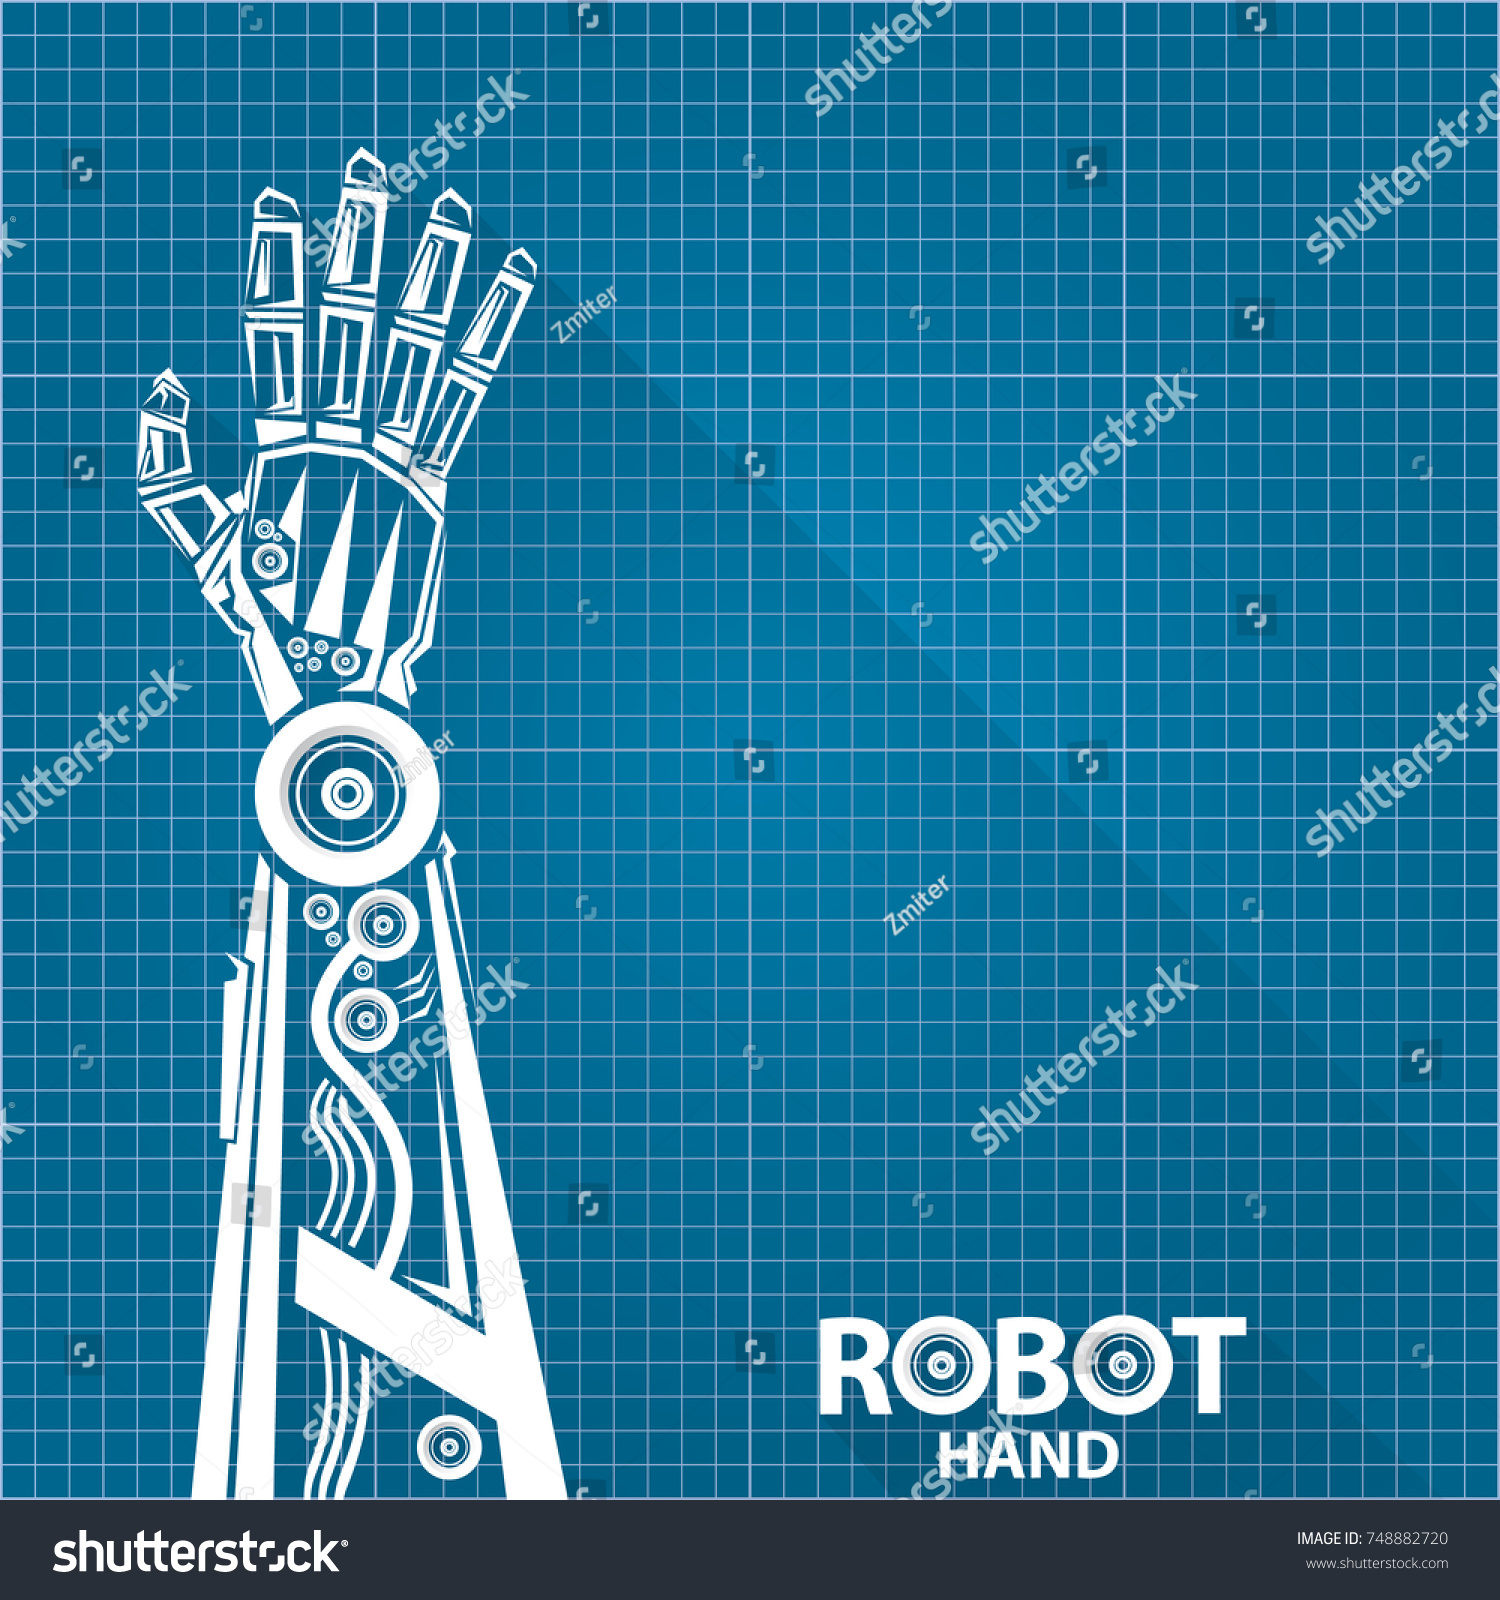 Vector robotic arm symbol on blueprint stock vector 2018 748882720 vector robotic arm symbol on blueprint paper background robot hand technology background design template malvernweather Image collections